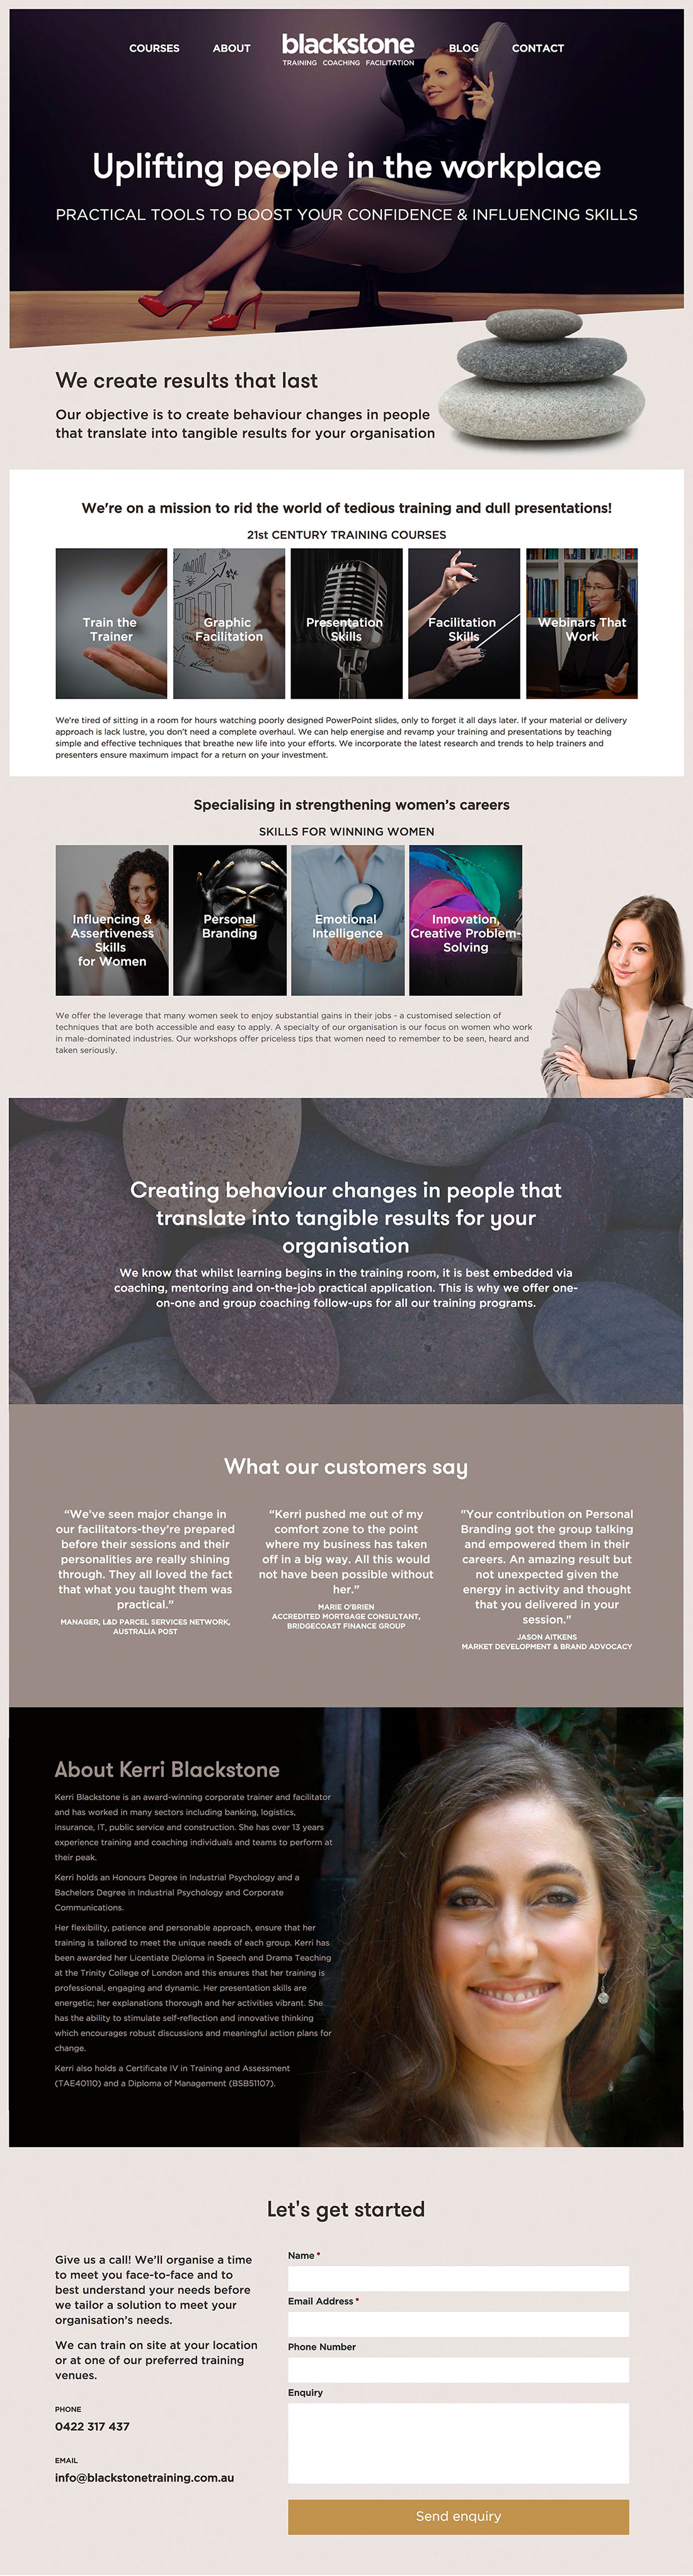 blackstone-homepage2